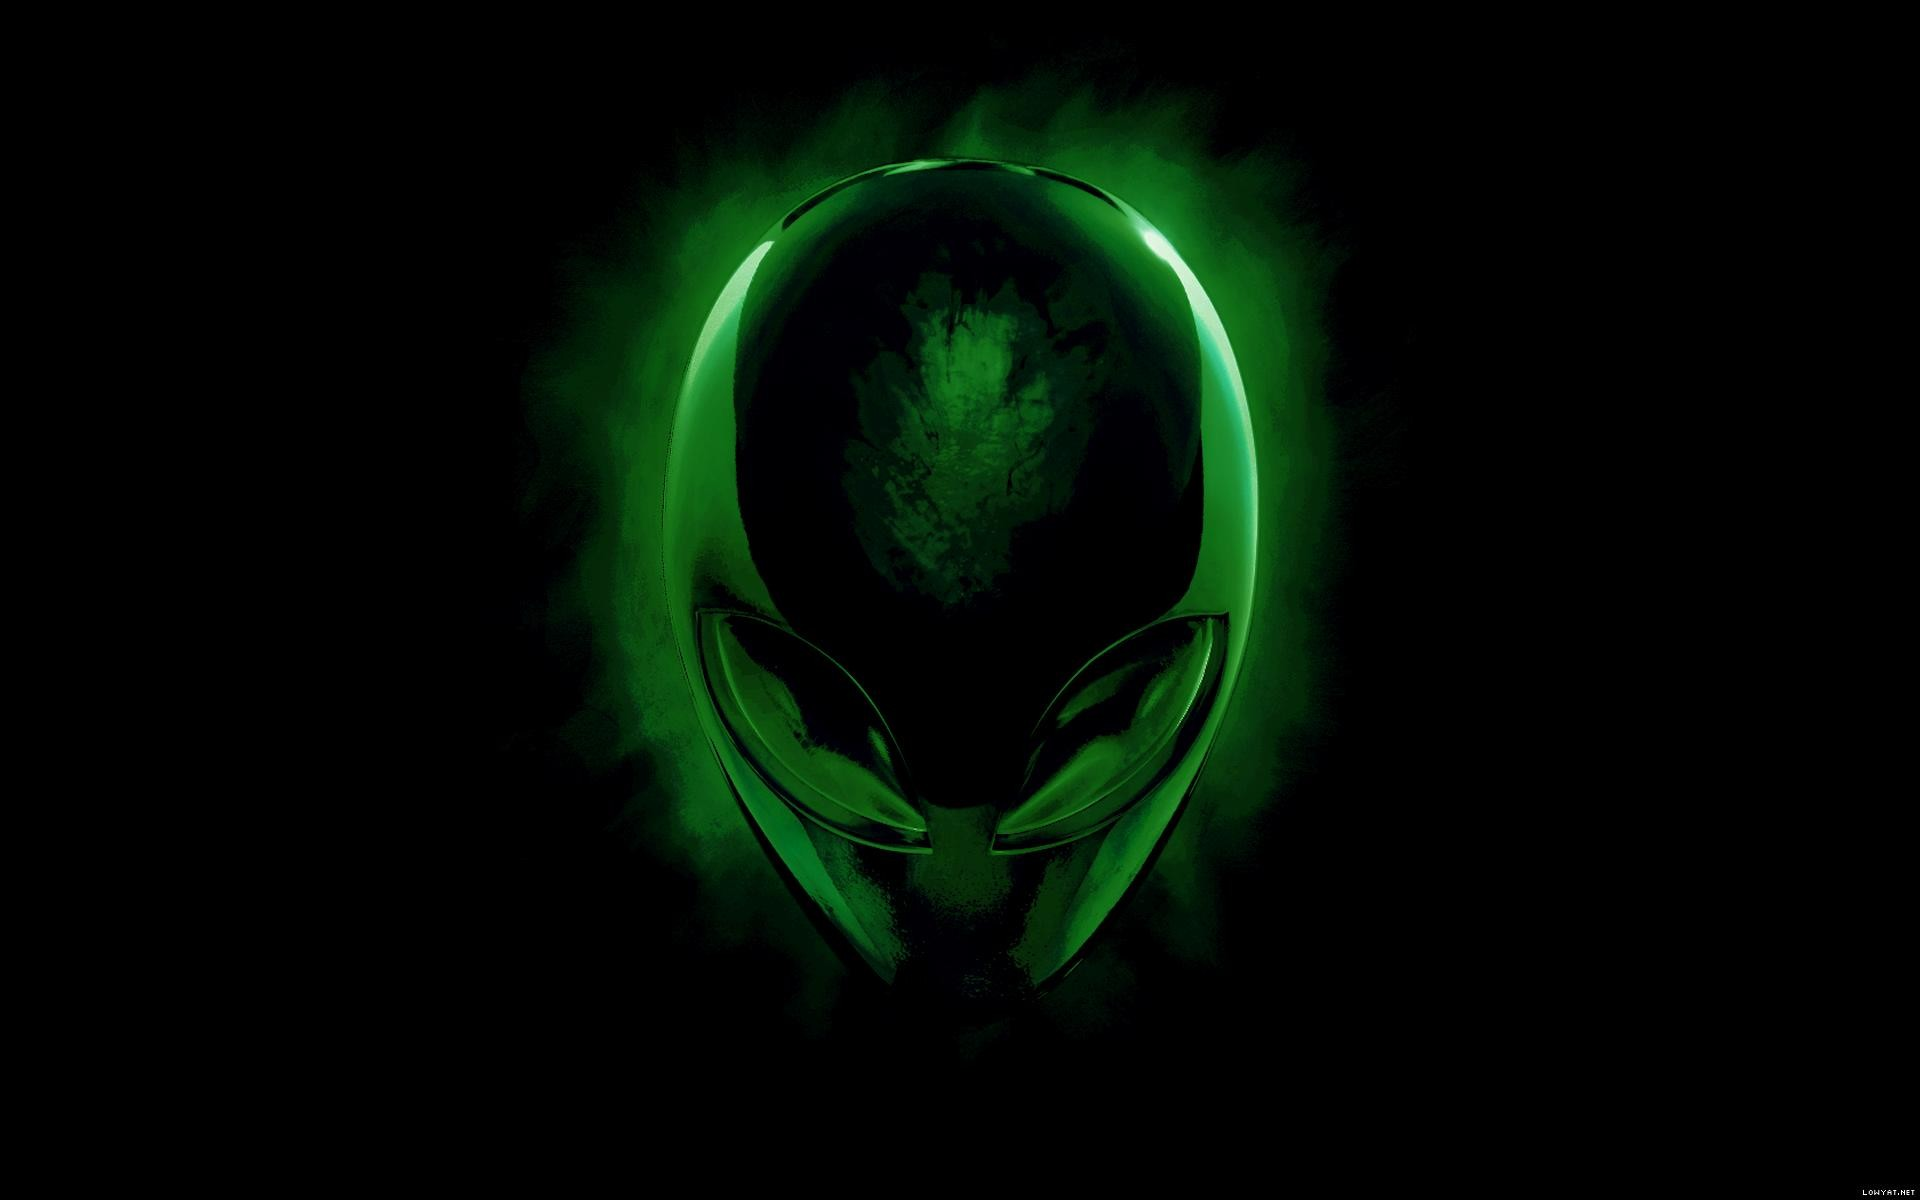 1920x1200 Alienware Desktop Background Alien Head Green